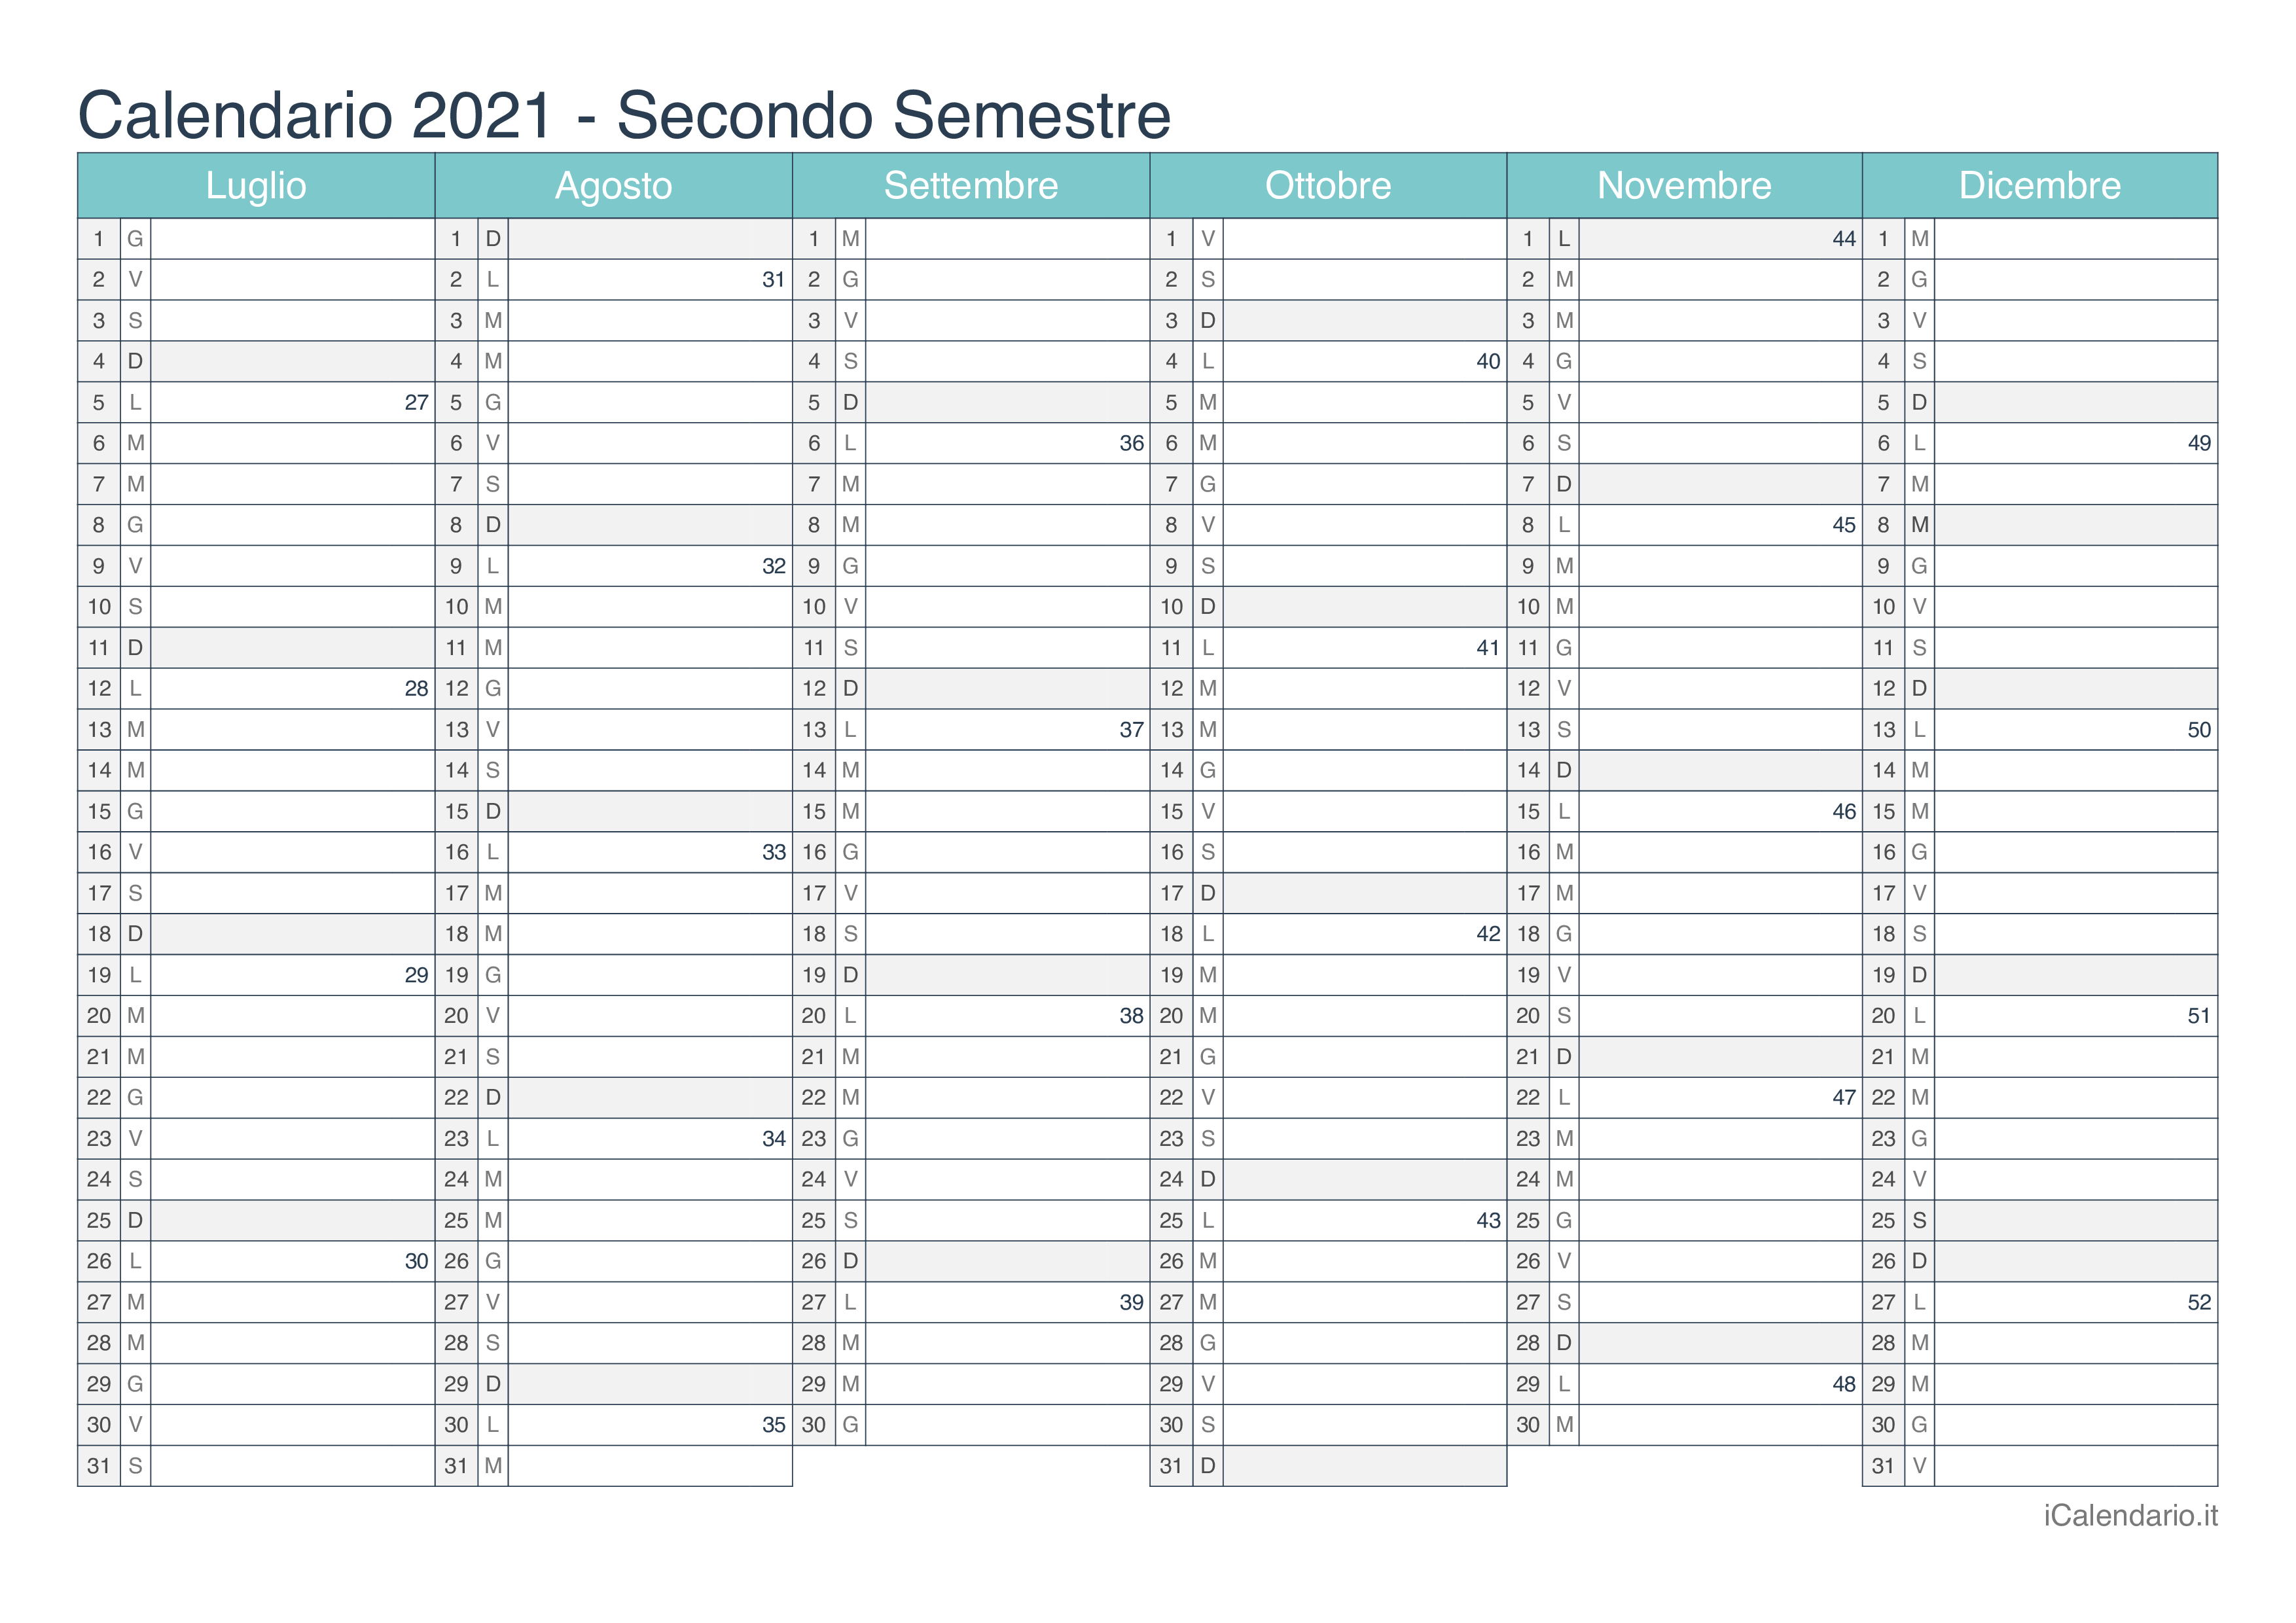 Calendario 2021 da stampare   iCalendario.it